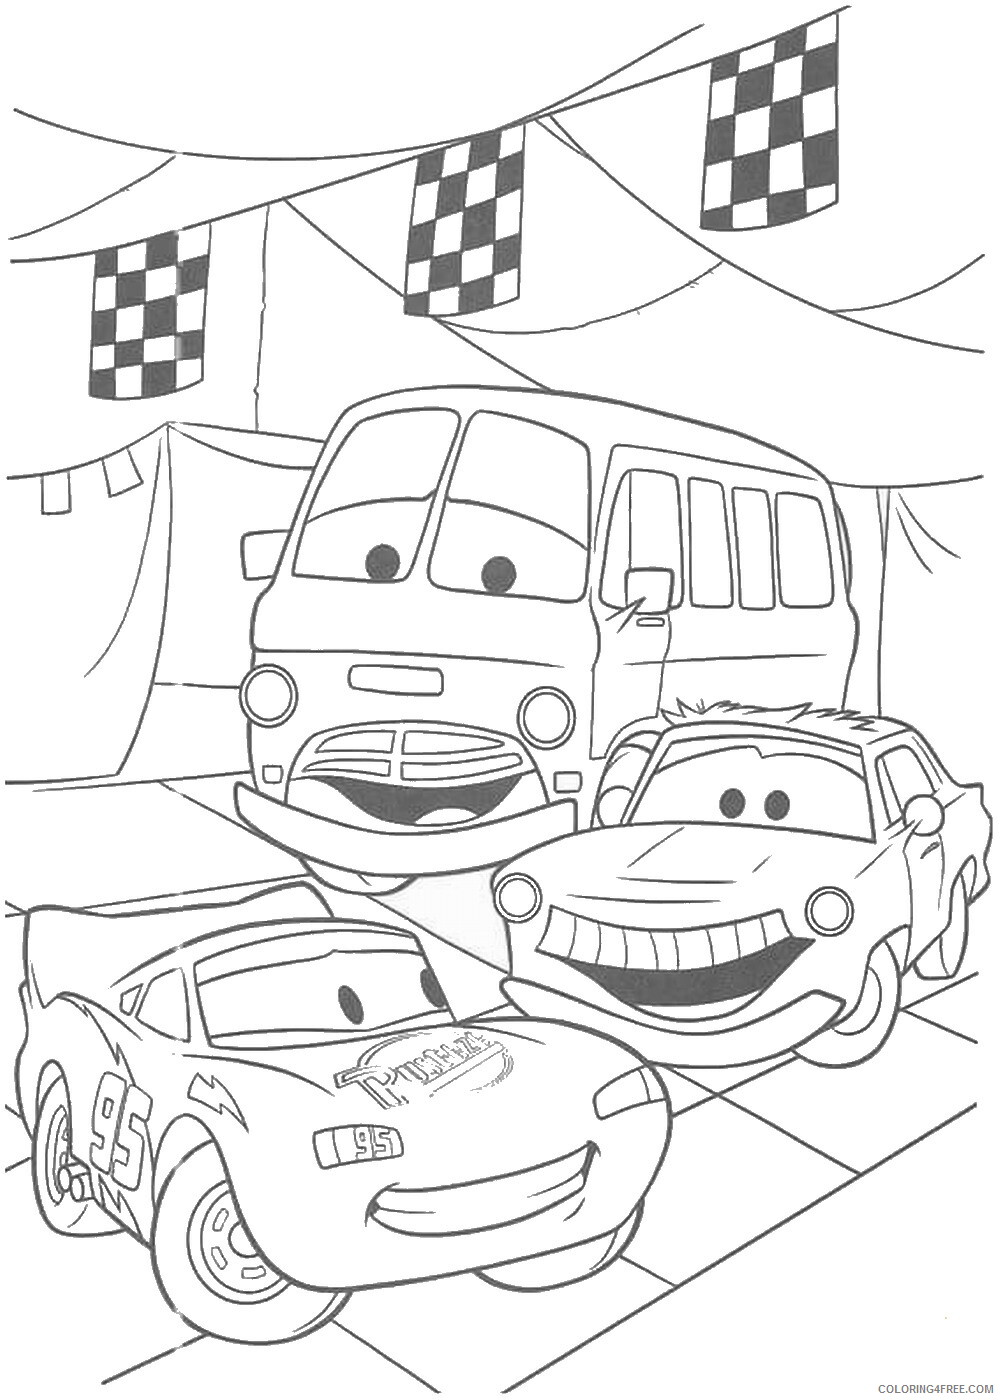 Cars Coloring Pages TV Film cars3 movie12 Printable 2020 01800 Coloring4free